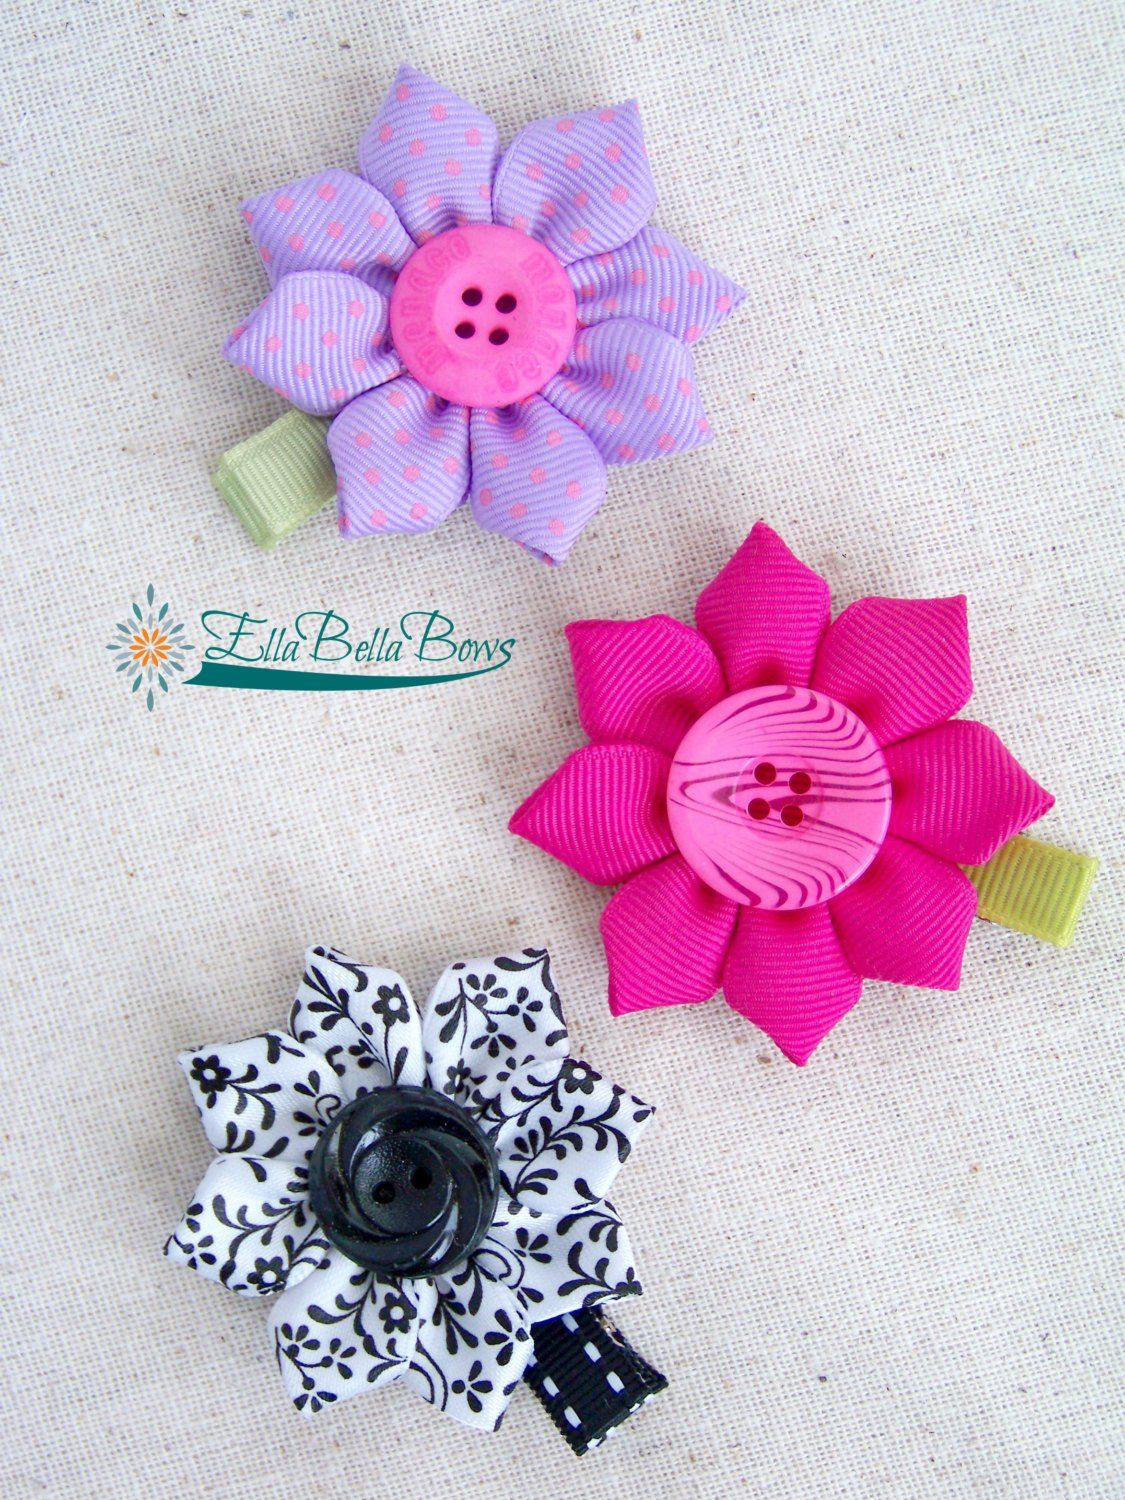 Instant Download Starflower Sunflower Ribbon Sculpture Etsy Ribbon Sculpture Bows Fabric Crafts